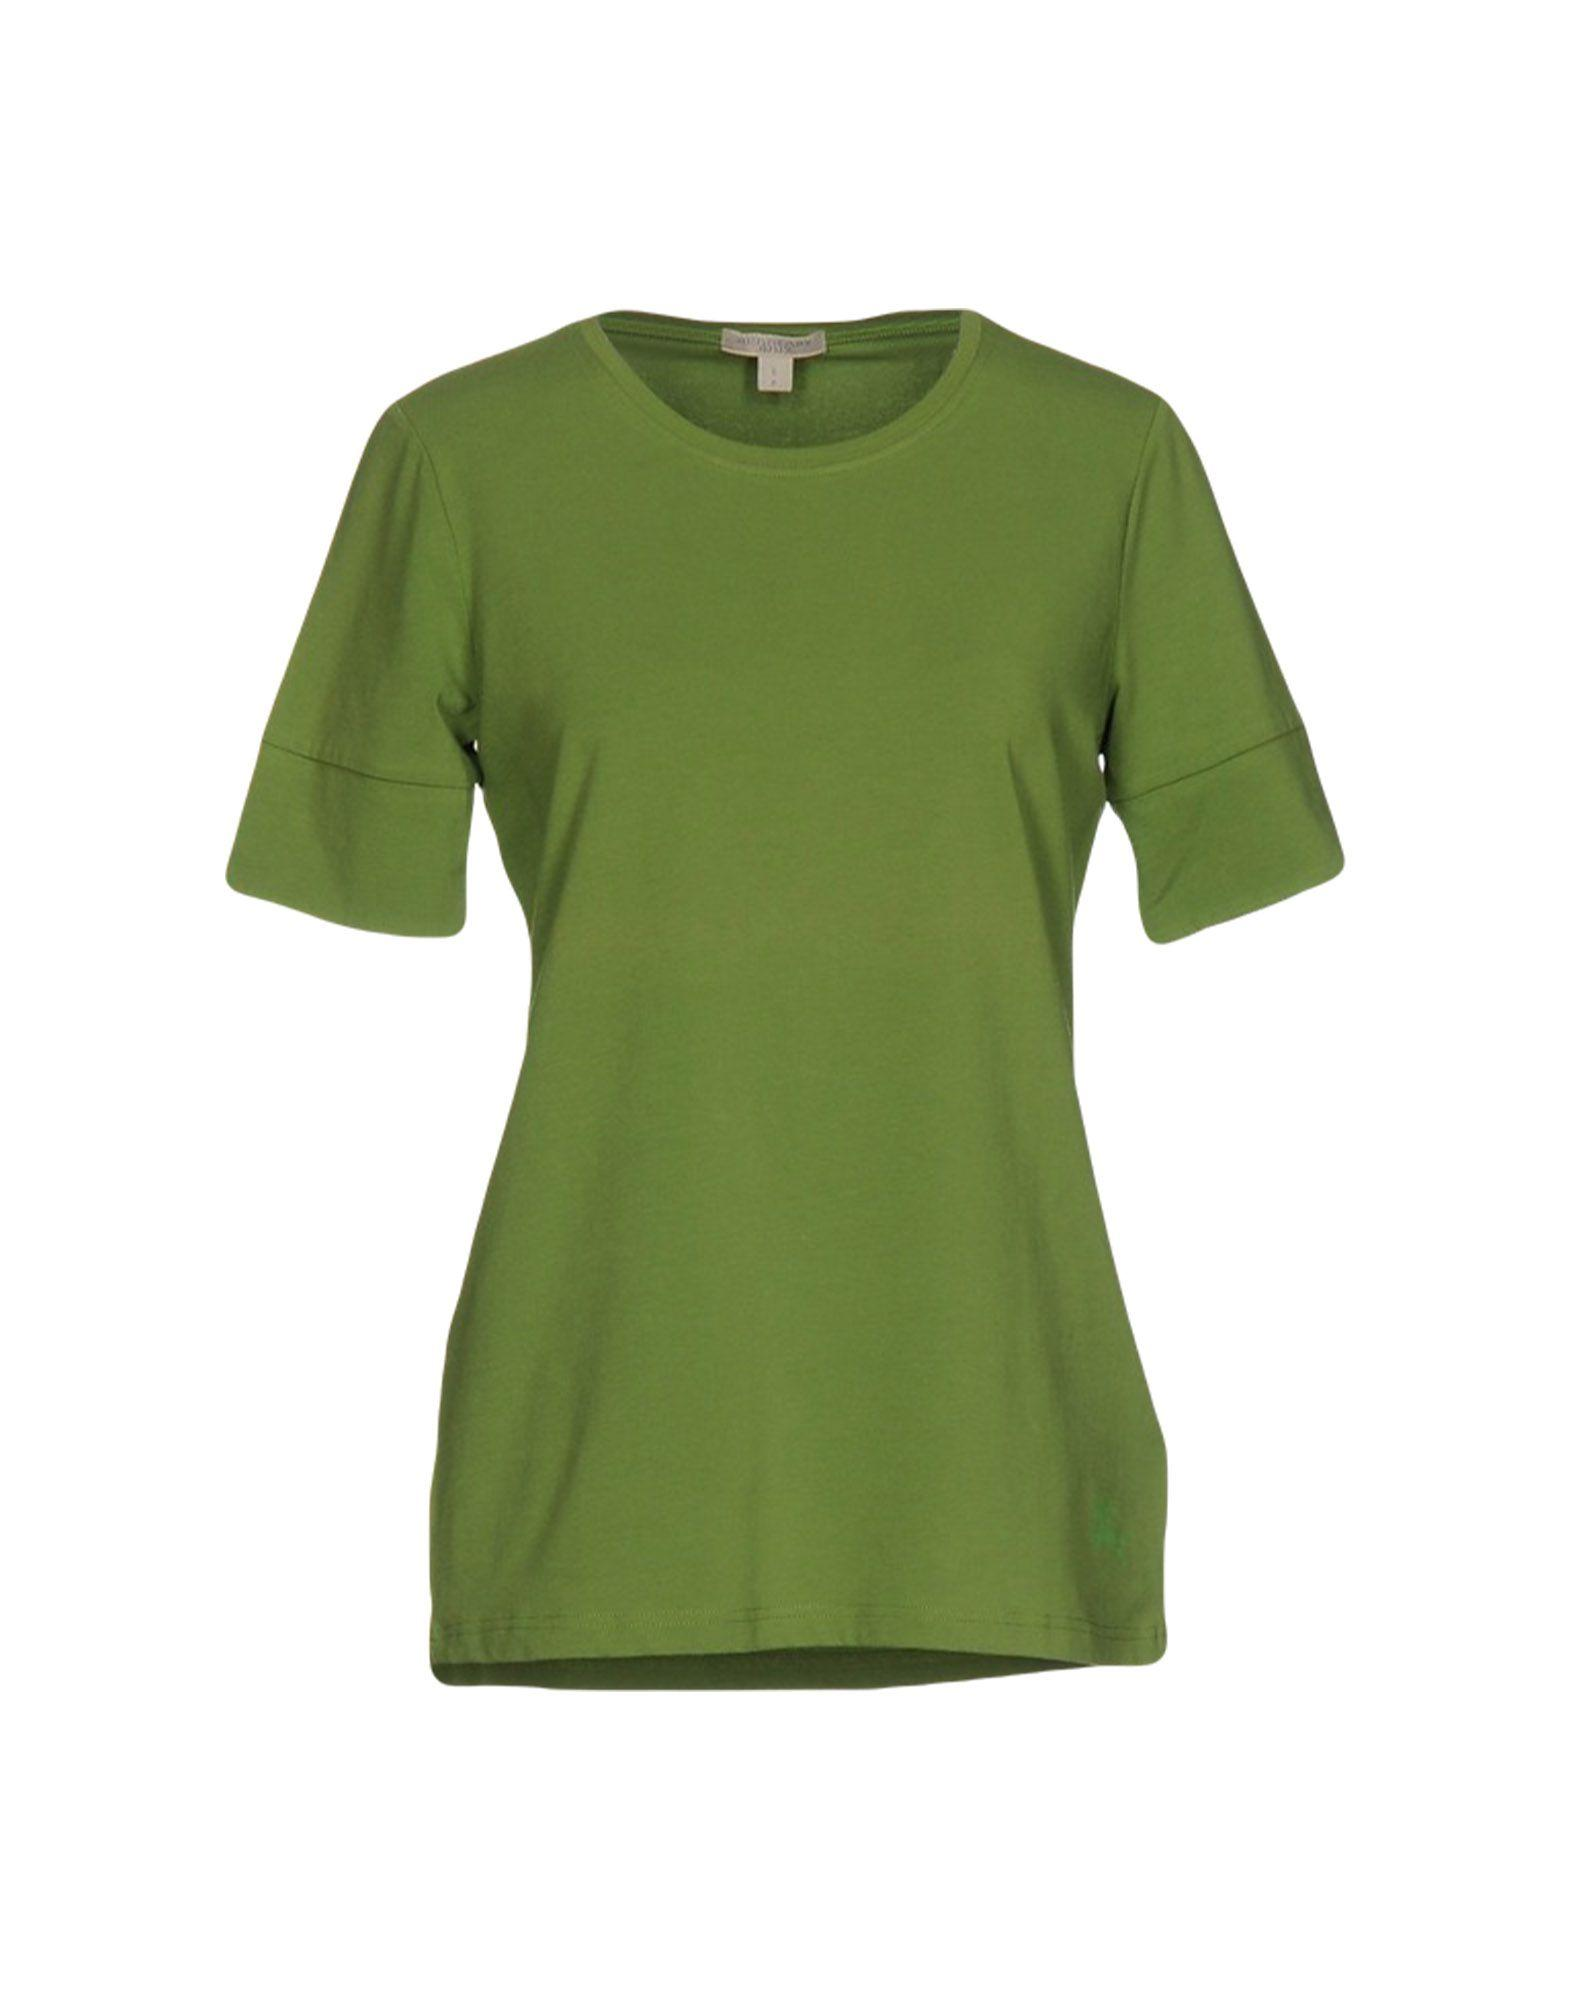 Burberry brit t shirt in green lyst for Burberry brit green plaid shirt